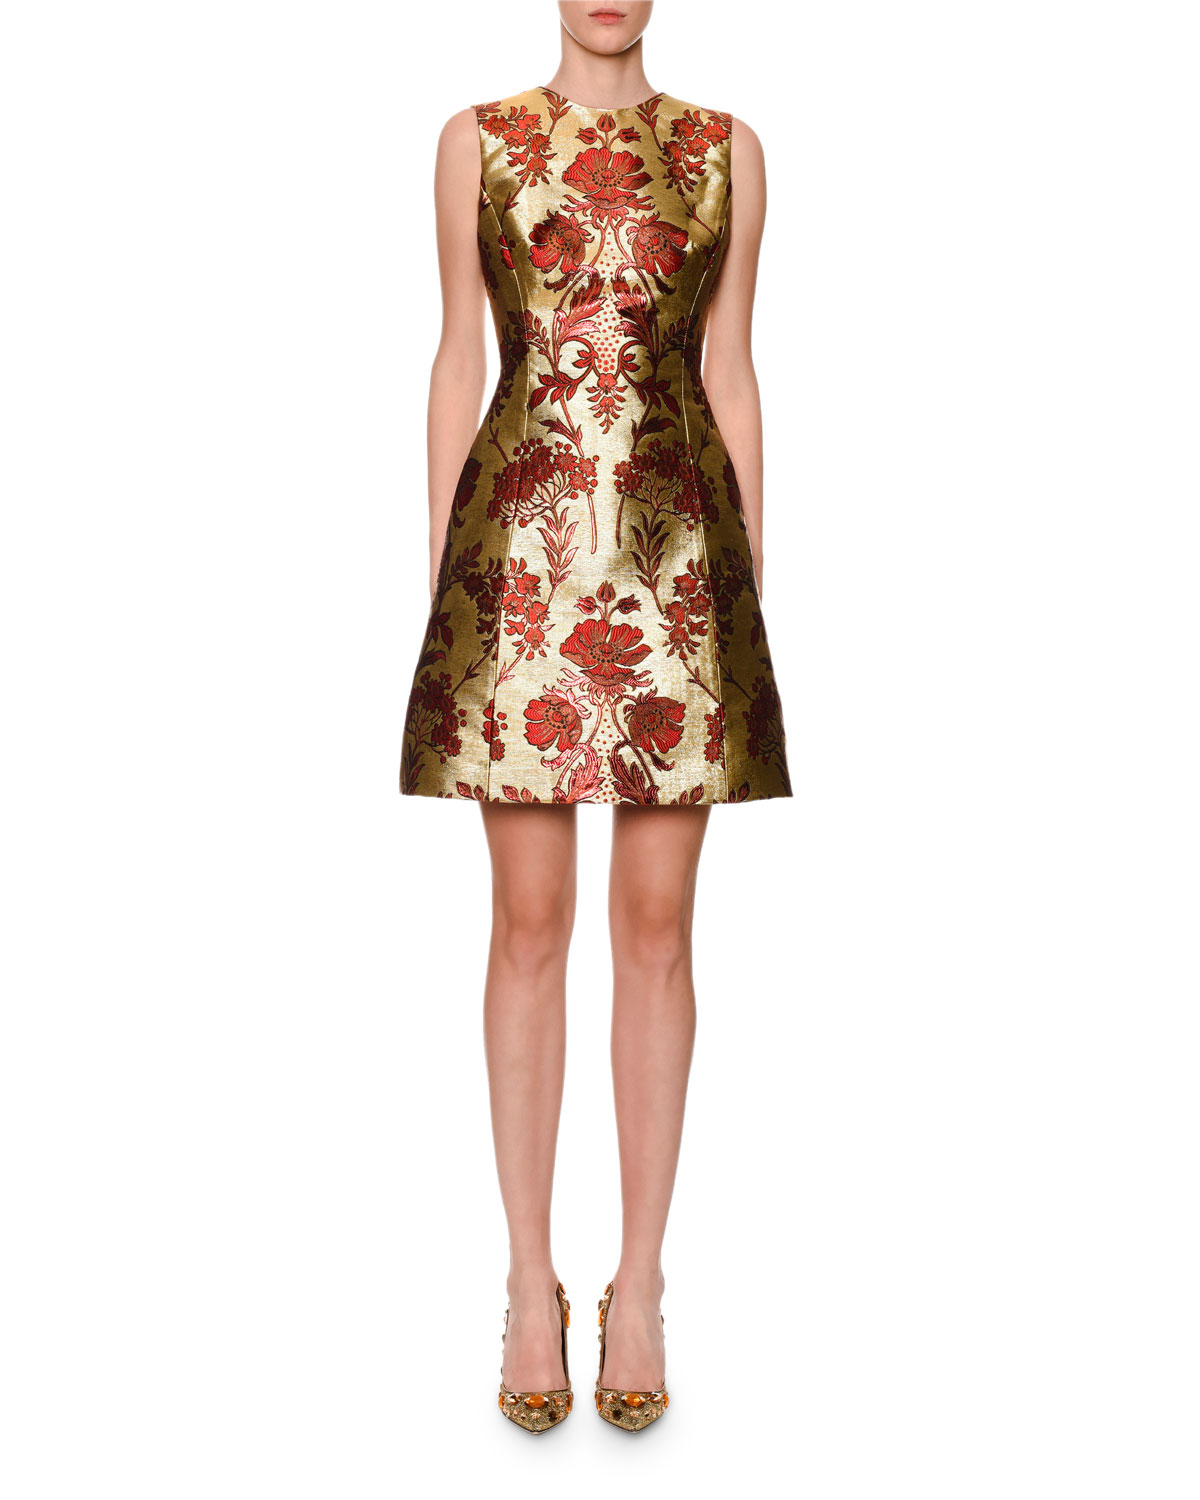 Dolce & Gabbana Sleeveless Metallic Floral-Jacquard A-Line Dress - what to wear to a new year's party